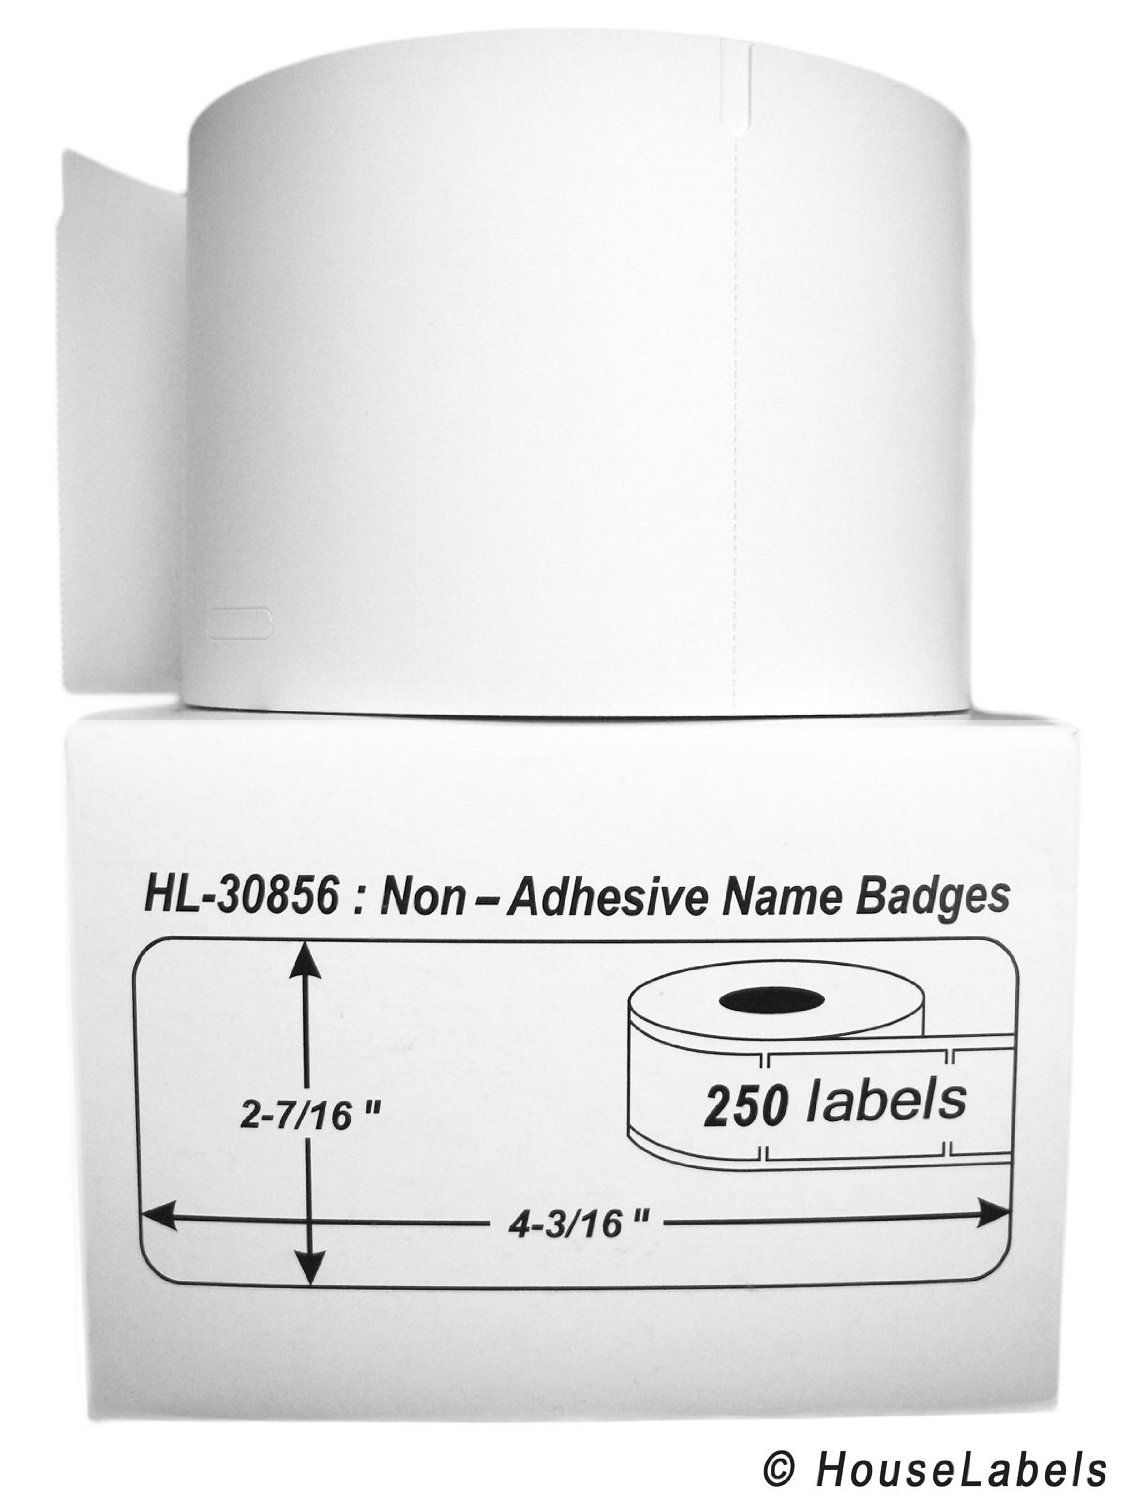 """4 Rolls; 250 Labels per Roll of DYMO-Compatible 30856 Non-Adhesive Name Badges (2-7/16"""" x 4-3/16"""") -- BPA Free!"""